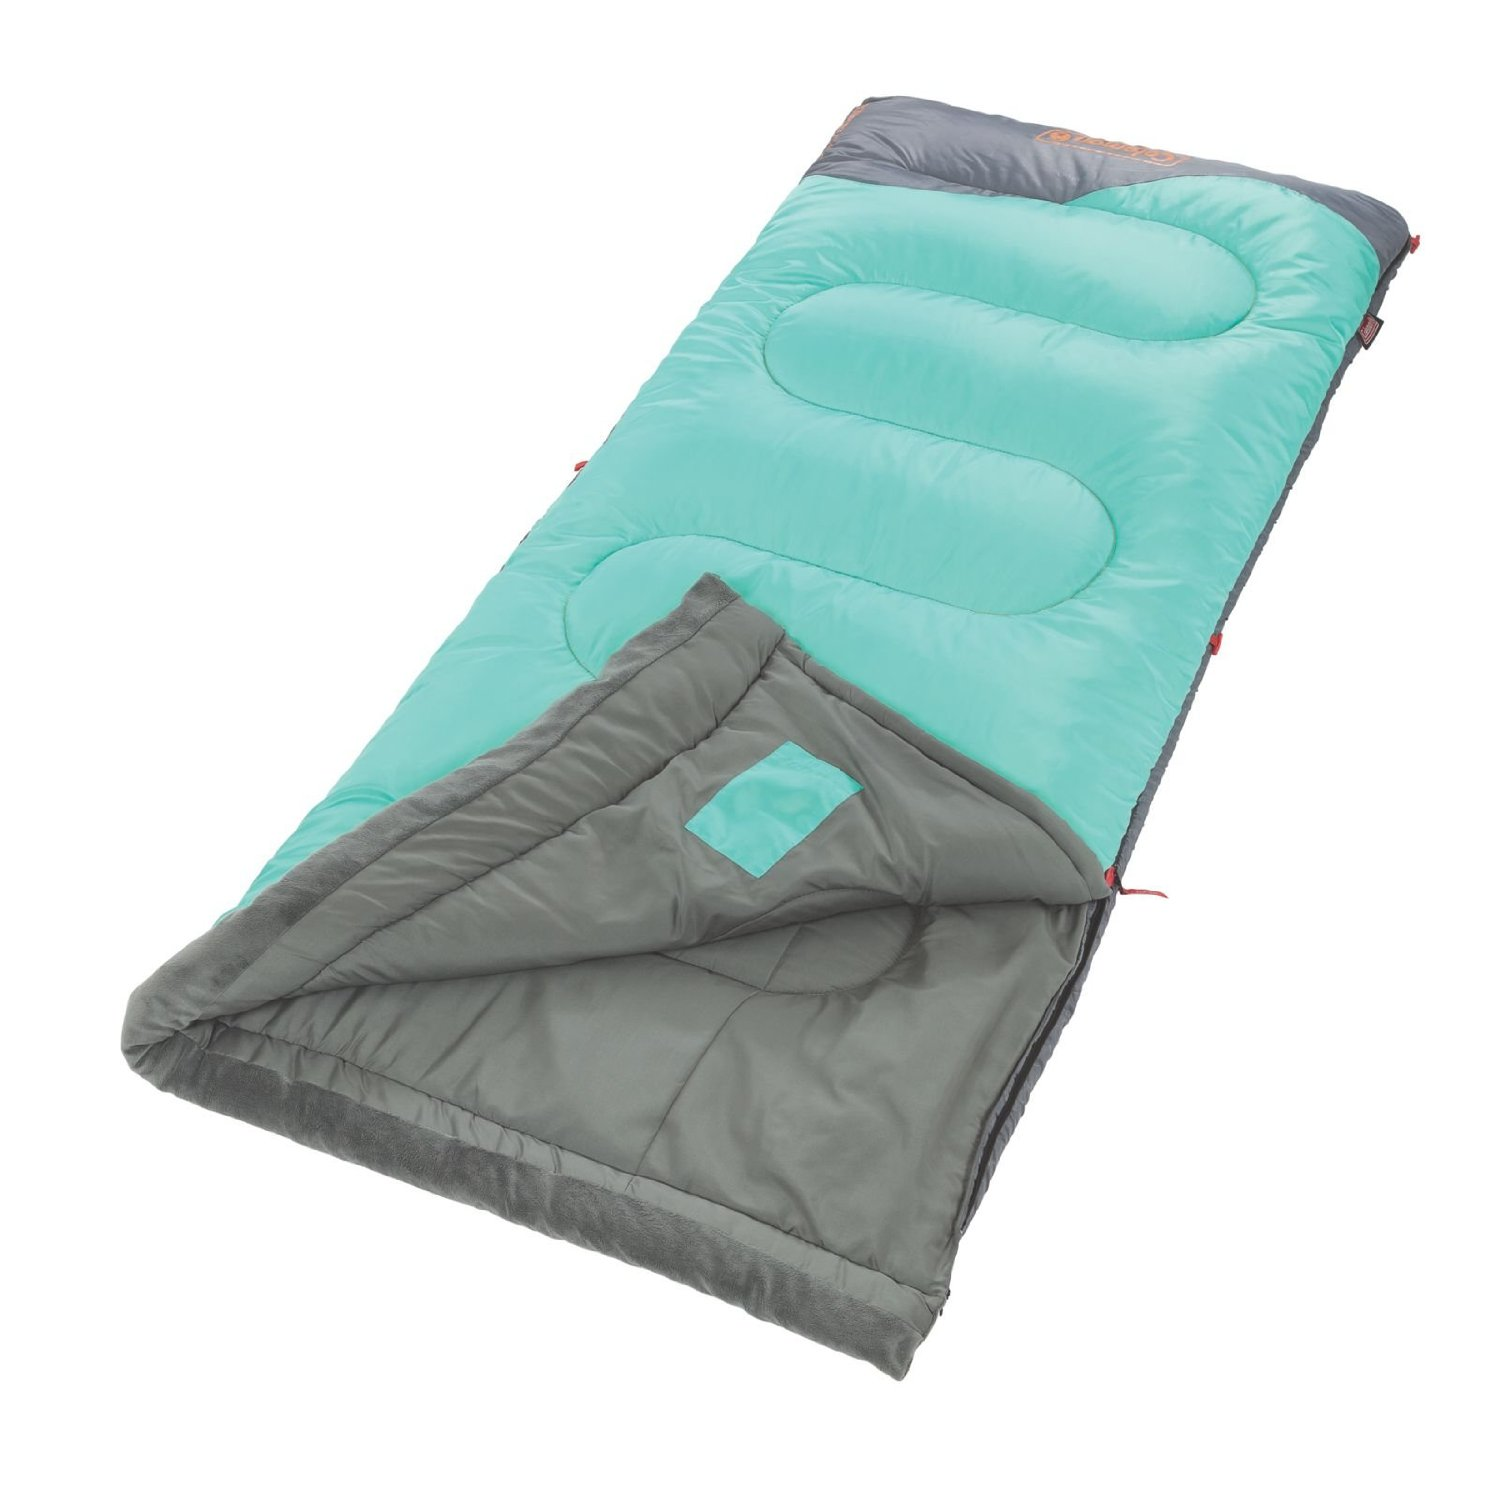 Coleman Comfort-Cloud™ 40 Sleeping Bag for Camping